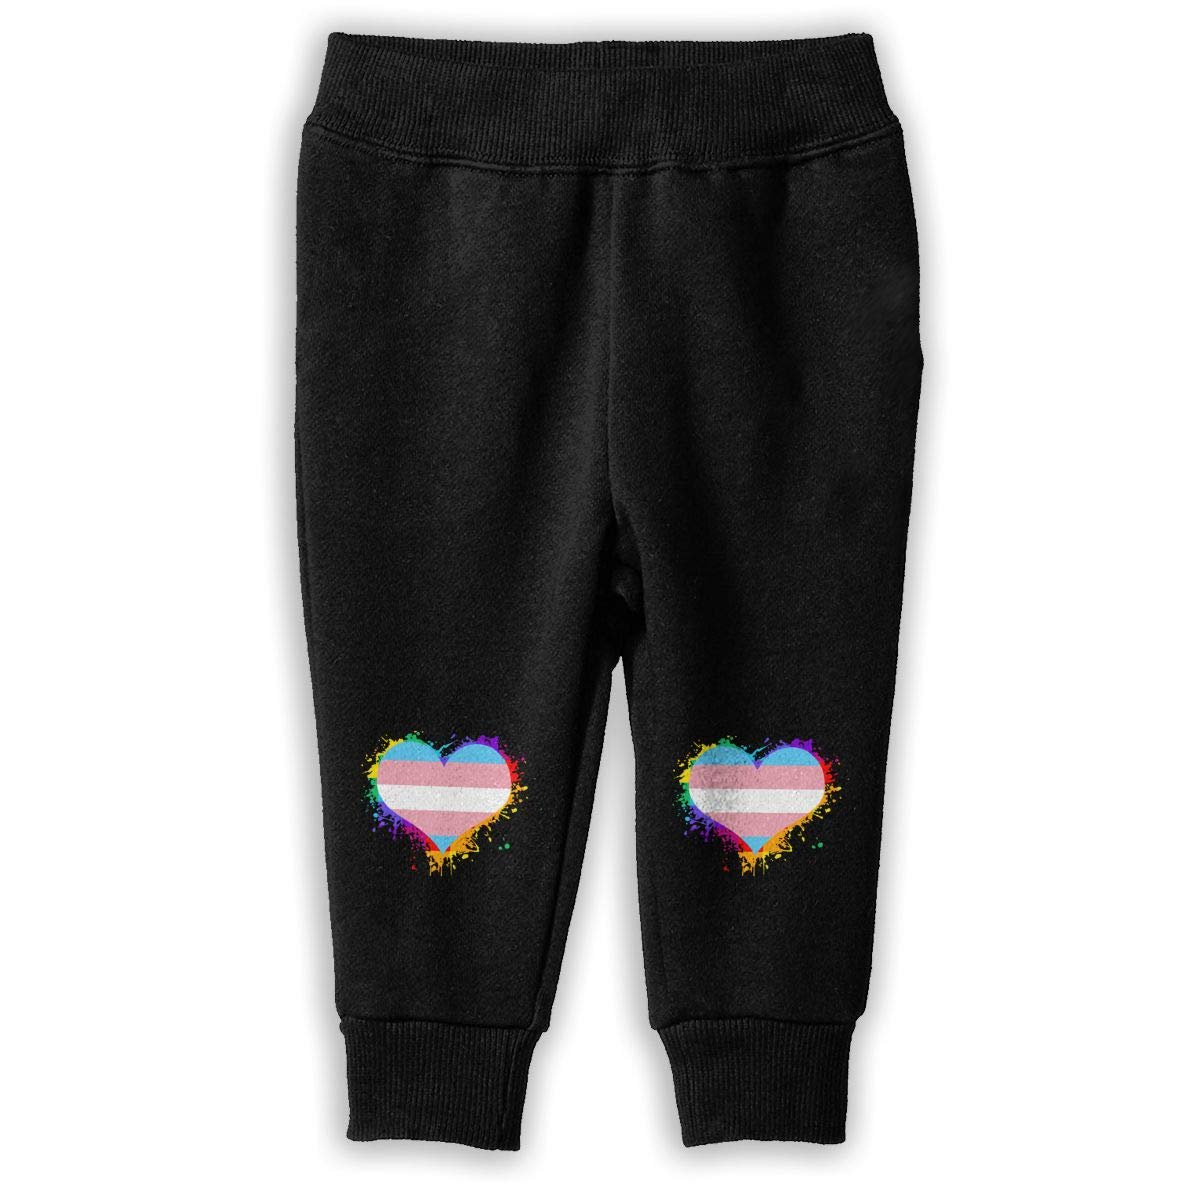 Kids /& Toddler Training Pants NJKM5MJ Transgender Flag Heart Sweatpants